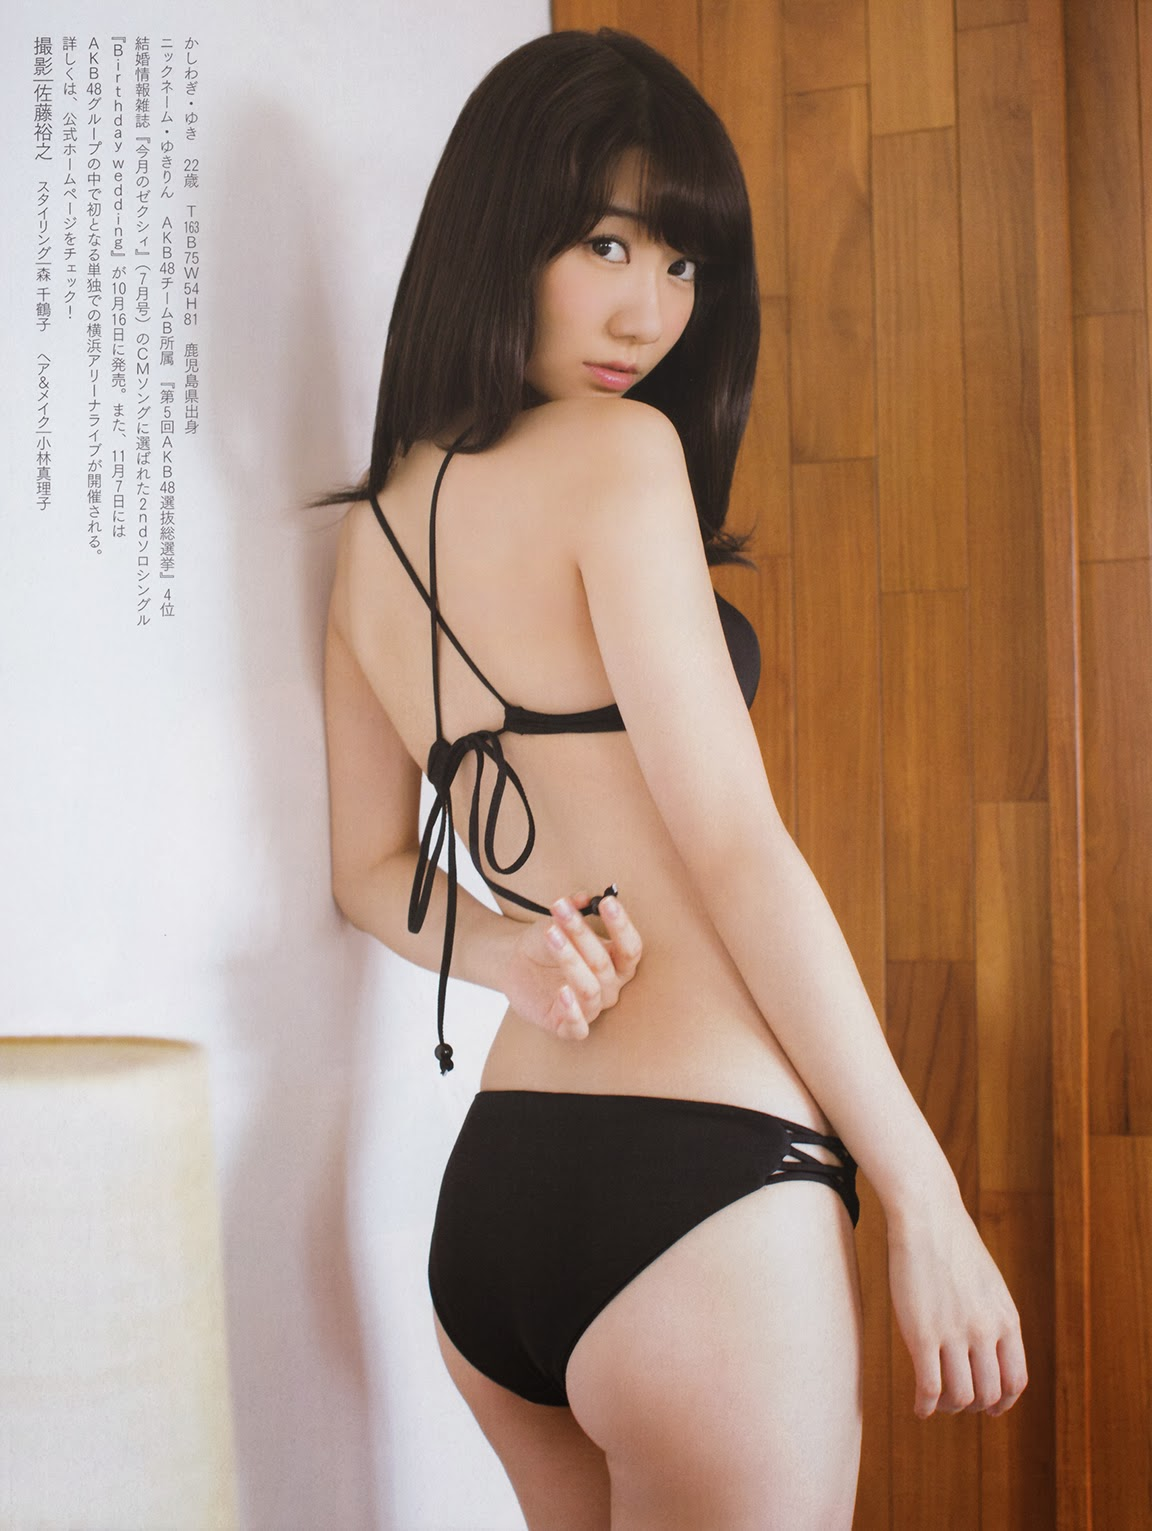 Horikita Maki Nude males, who do you find more sexually attractive?yuki or